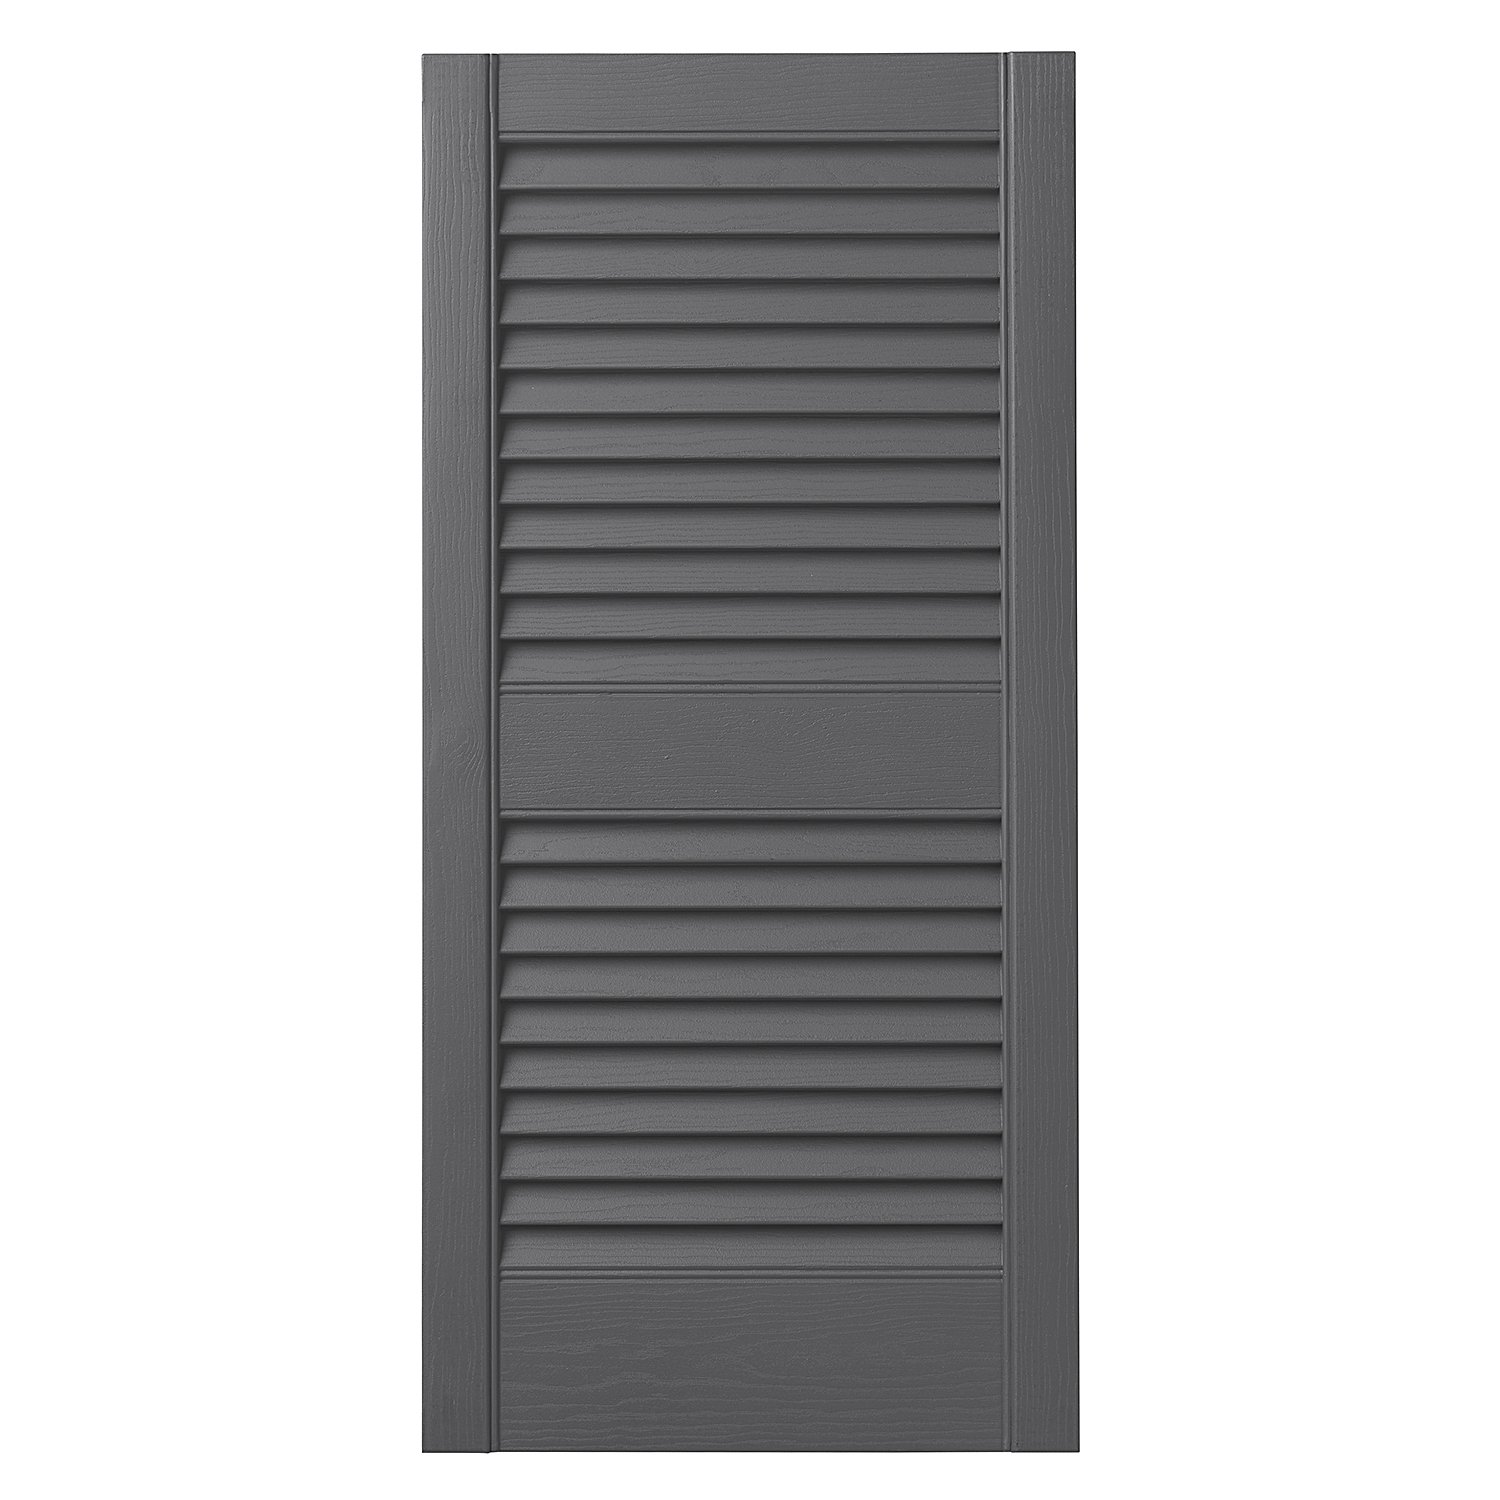 Ply Gem Shutters and Accents VINLV1535 16 Louvered Shutter, 15'', Gray